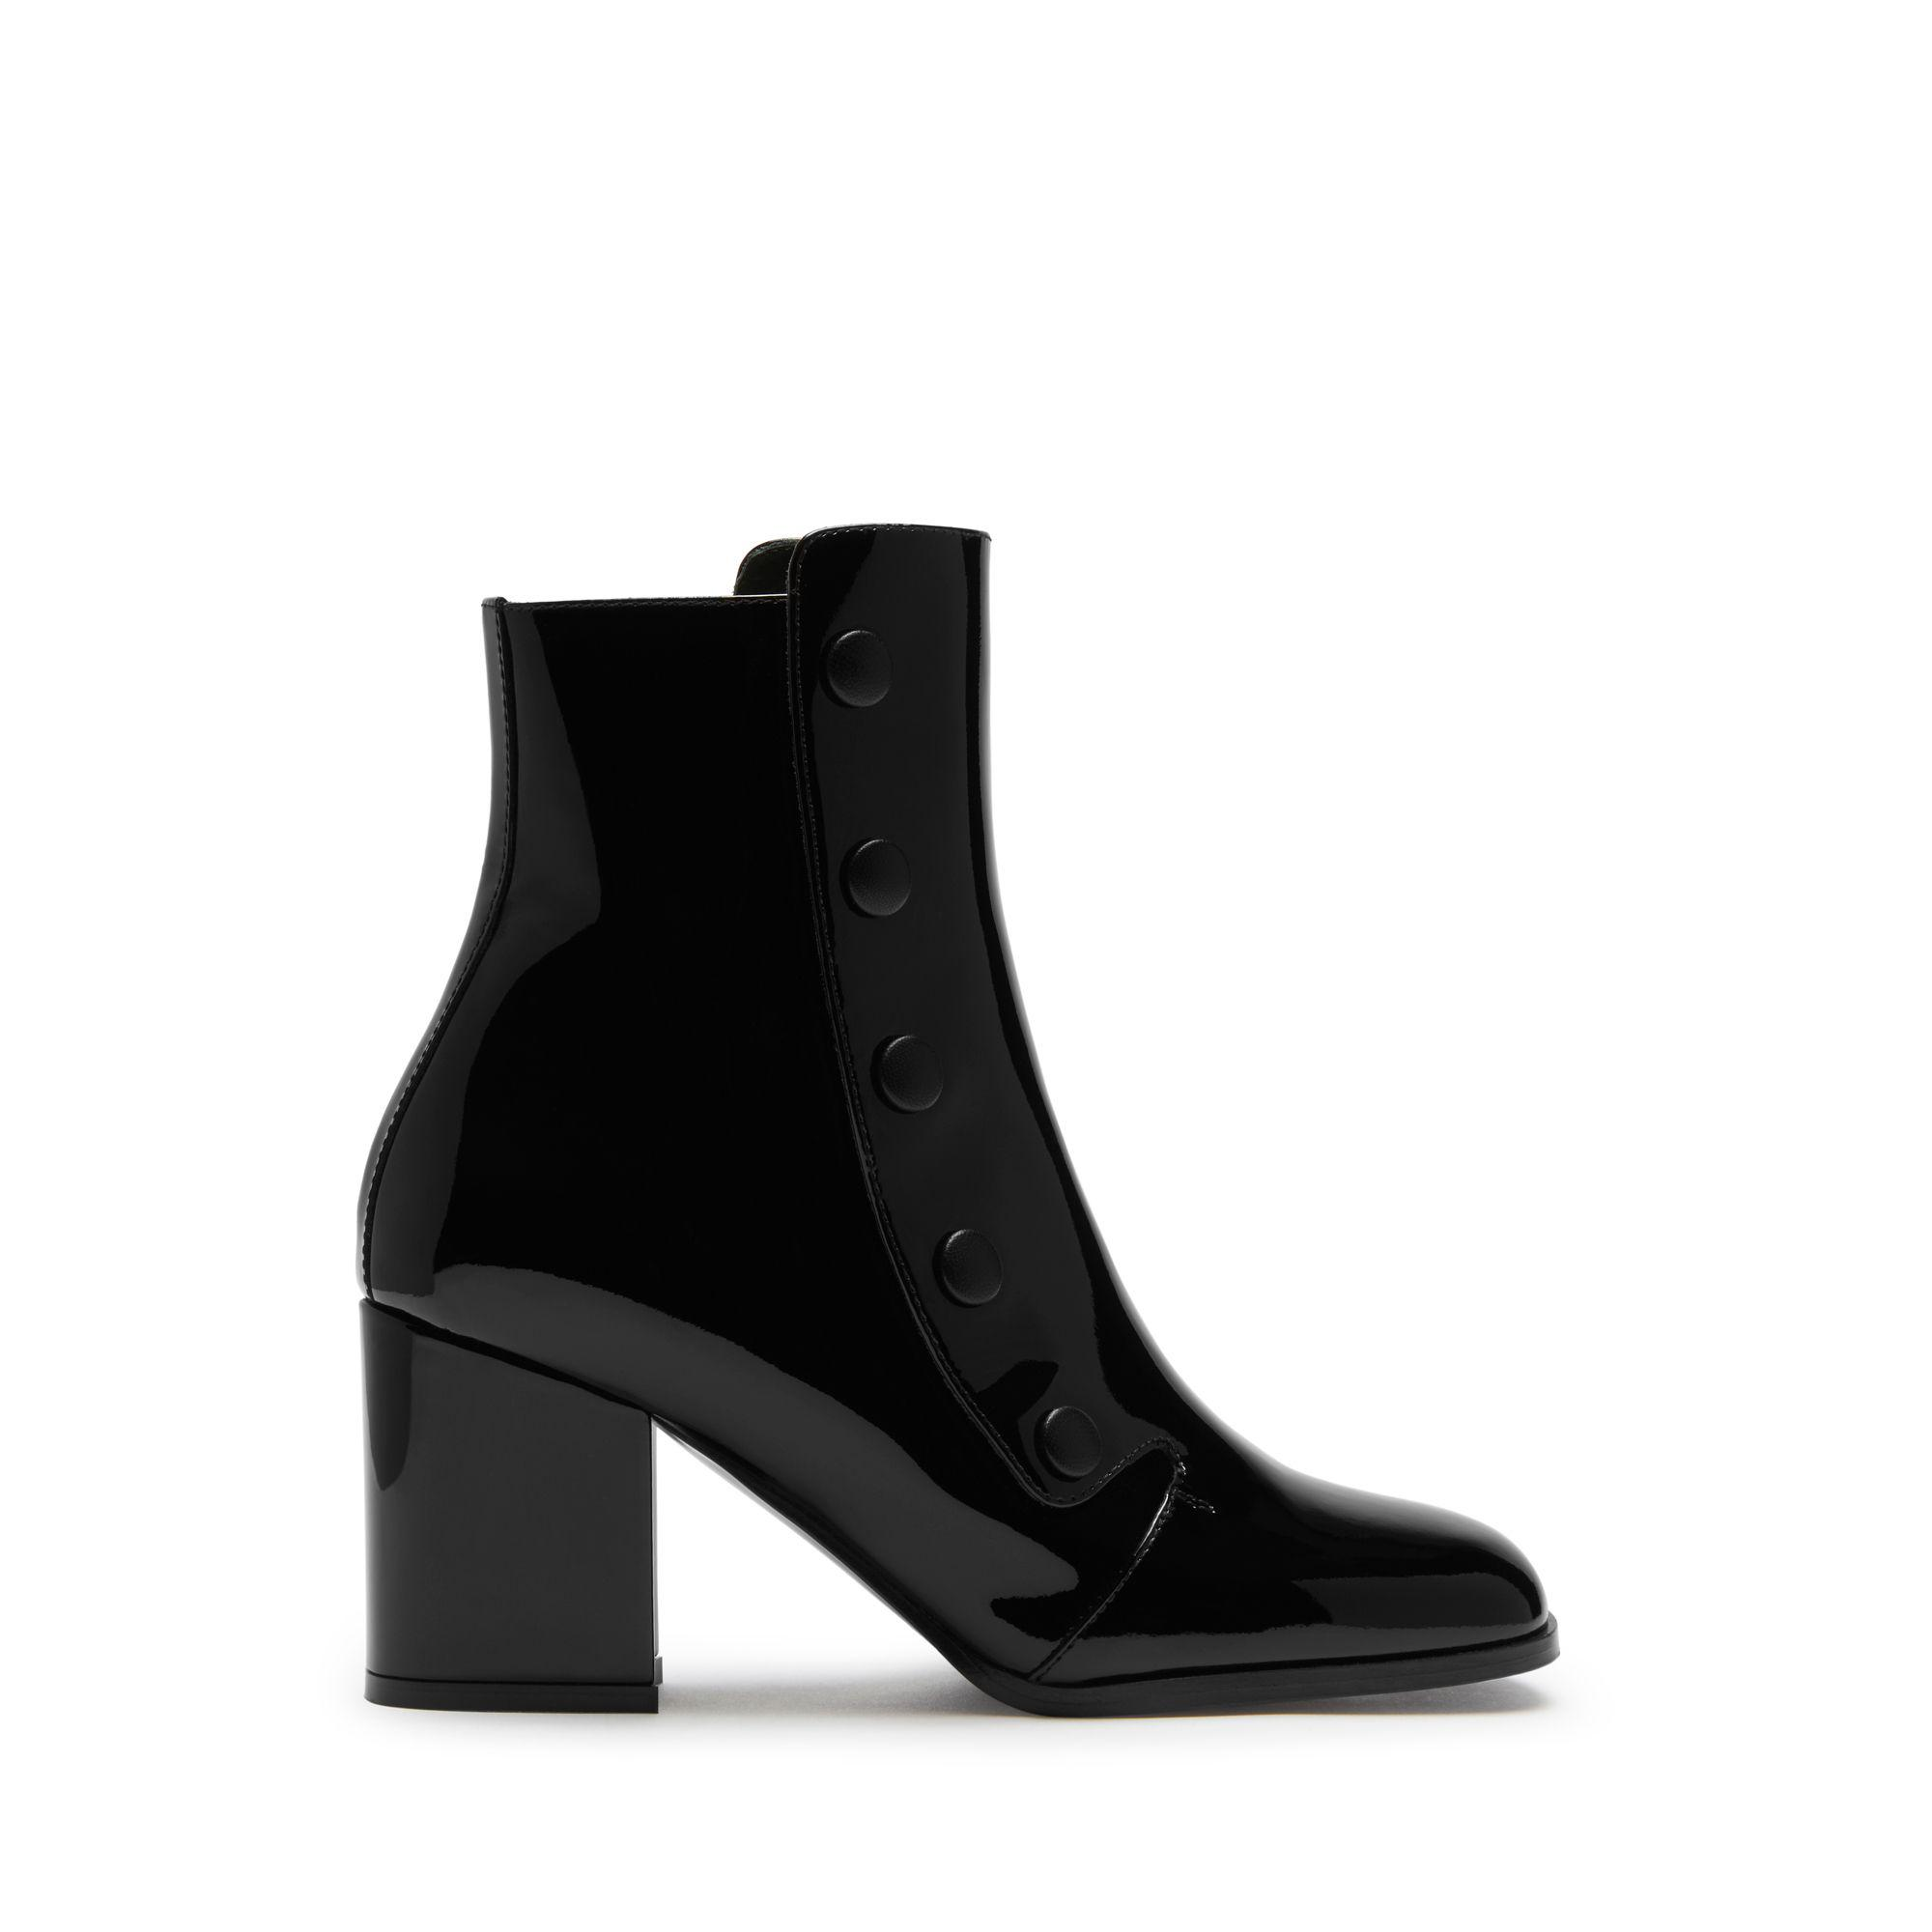 06958a1a7880 Lyst - Mulberry Marylebone Mid Heel Bootie In Black Patent in Black